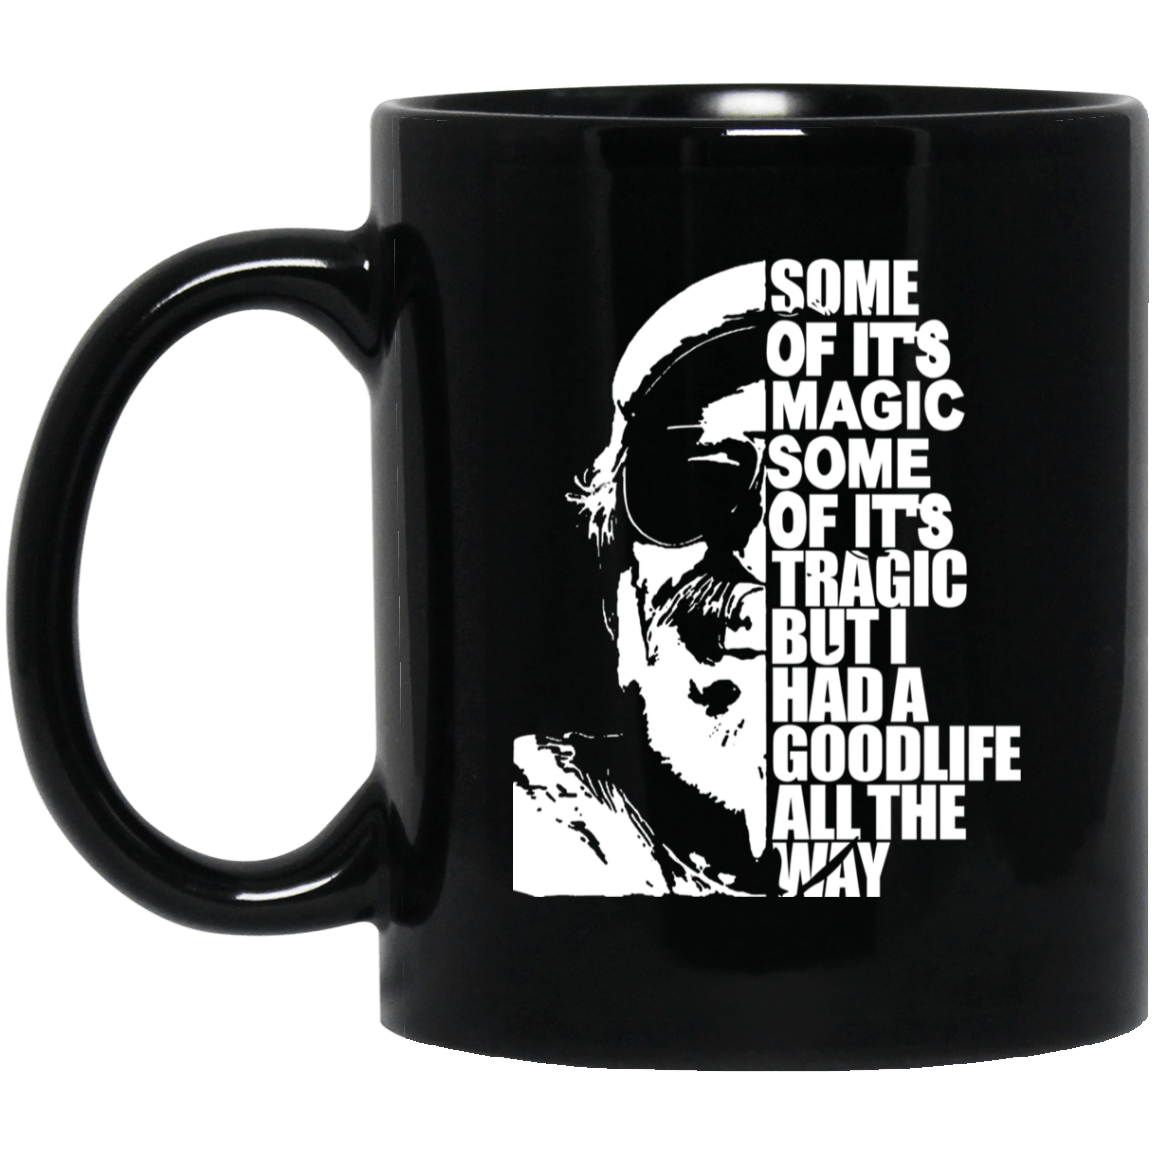 Some Of It's Magic Some Of It's Tragic But I Had A Good Life All The Way Jimmy Buffet Mug 1065-10181-88282960-49307 - Tee Ript